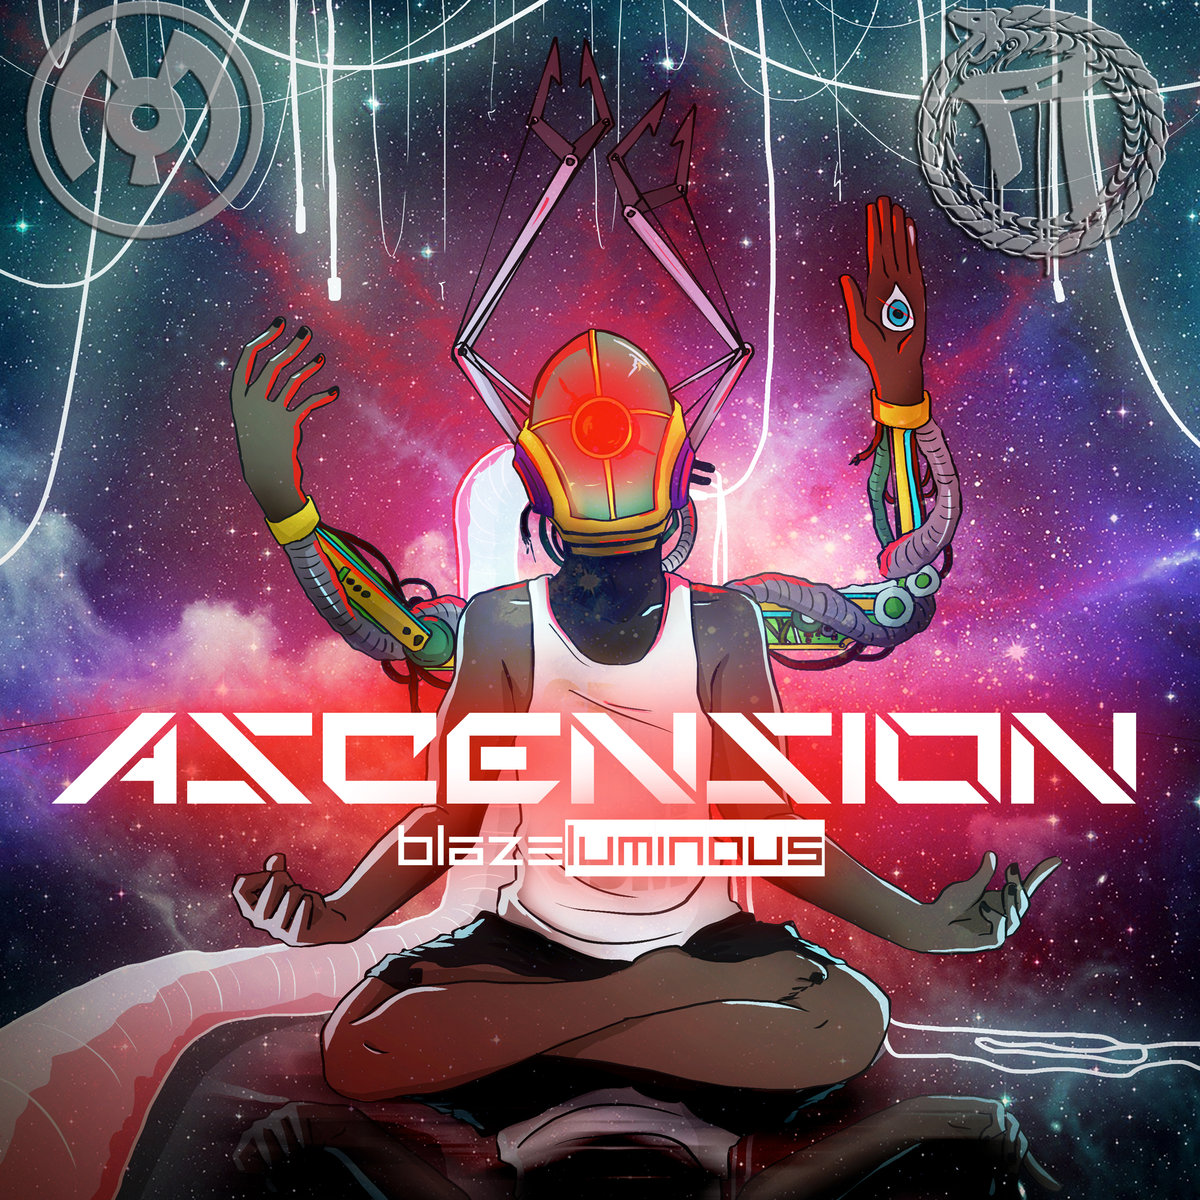 Blaze Luminious - Heirborn @ 'Ascension' album (electronic, dubstep)